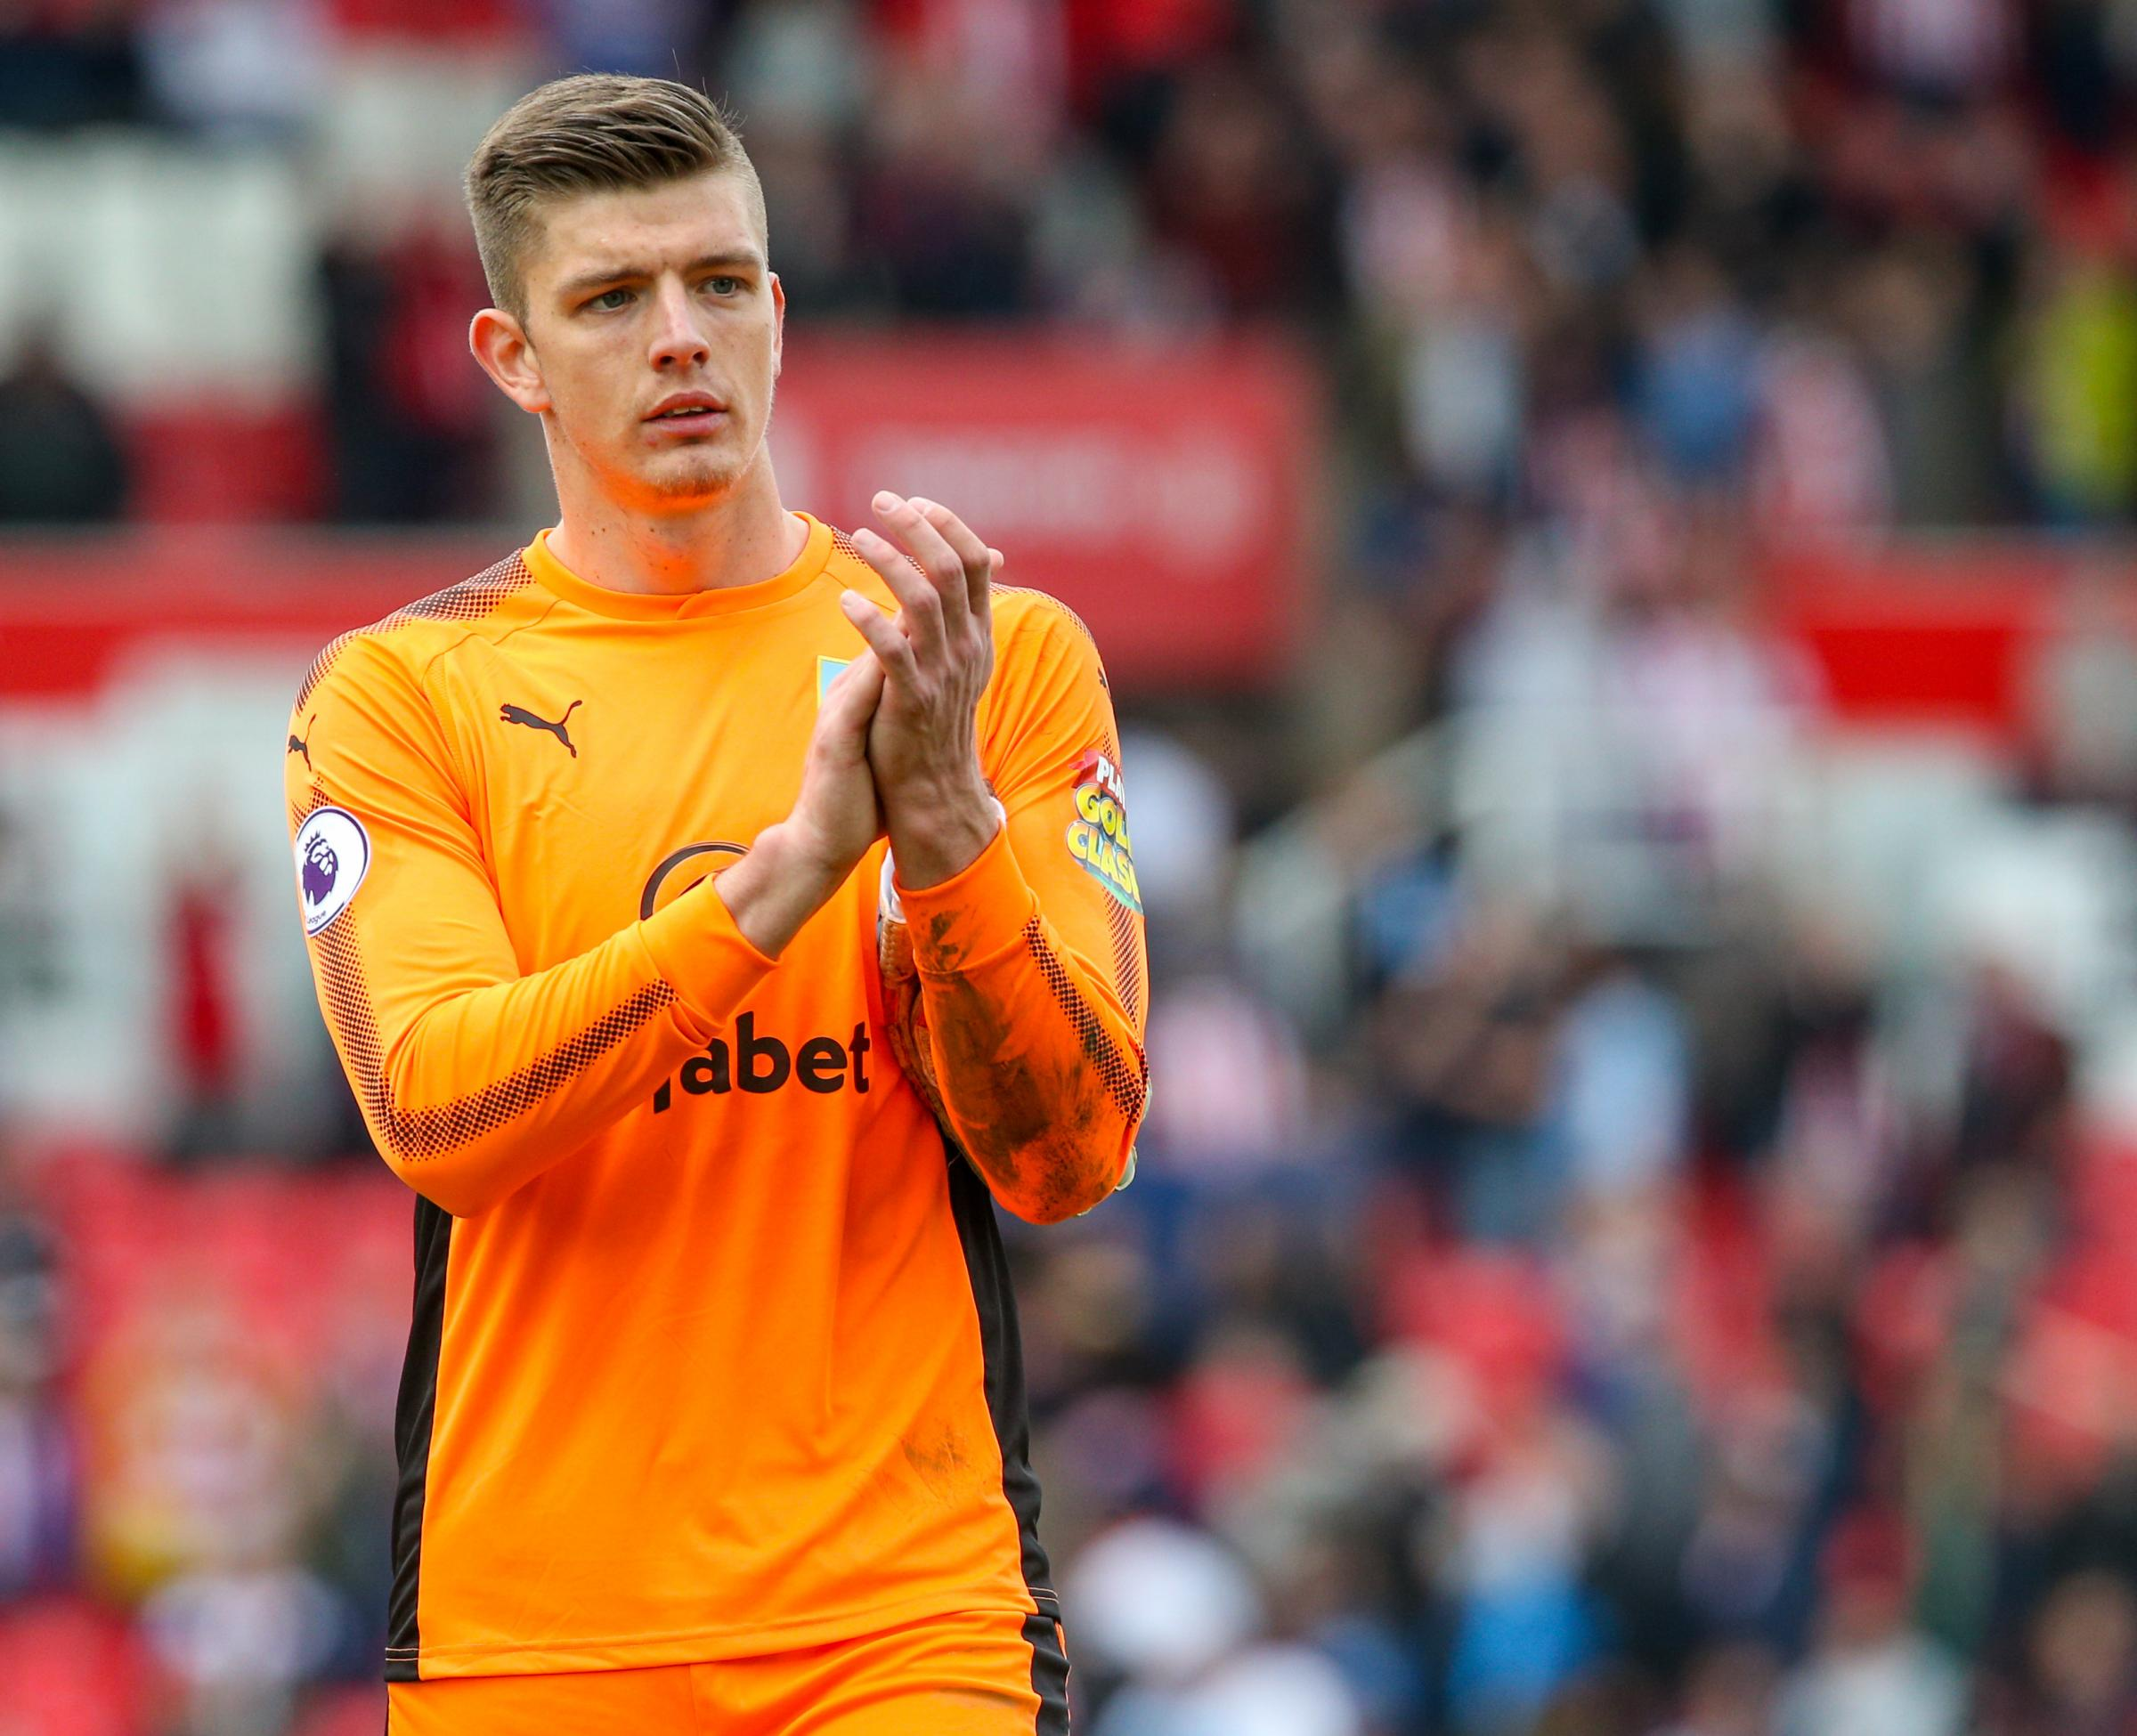 Nick Pope cleans up at Burnley Supporters Clubs awards night